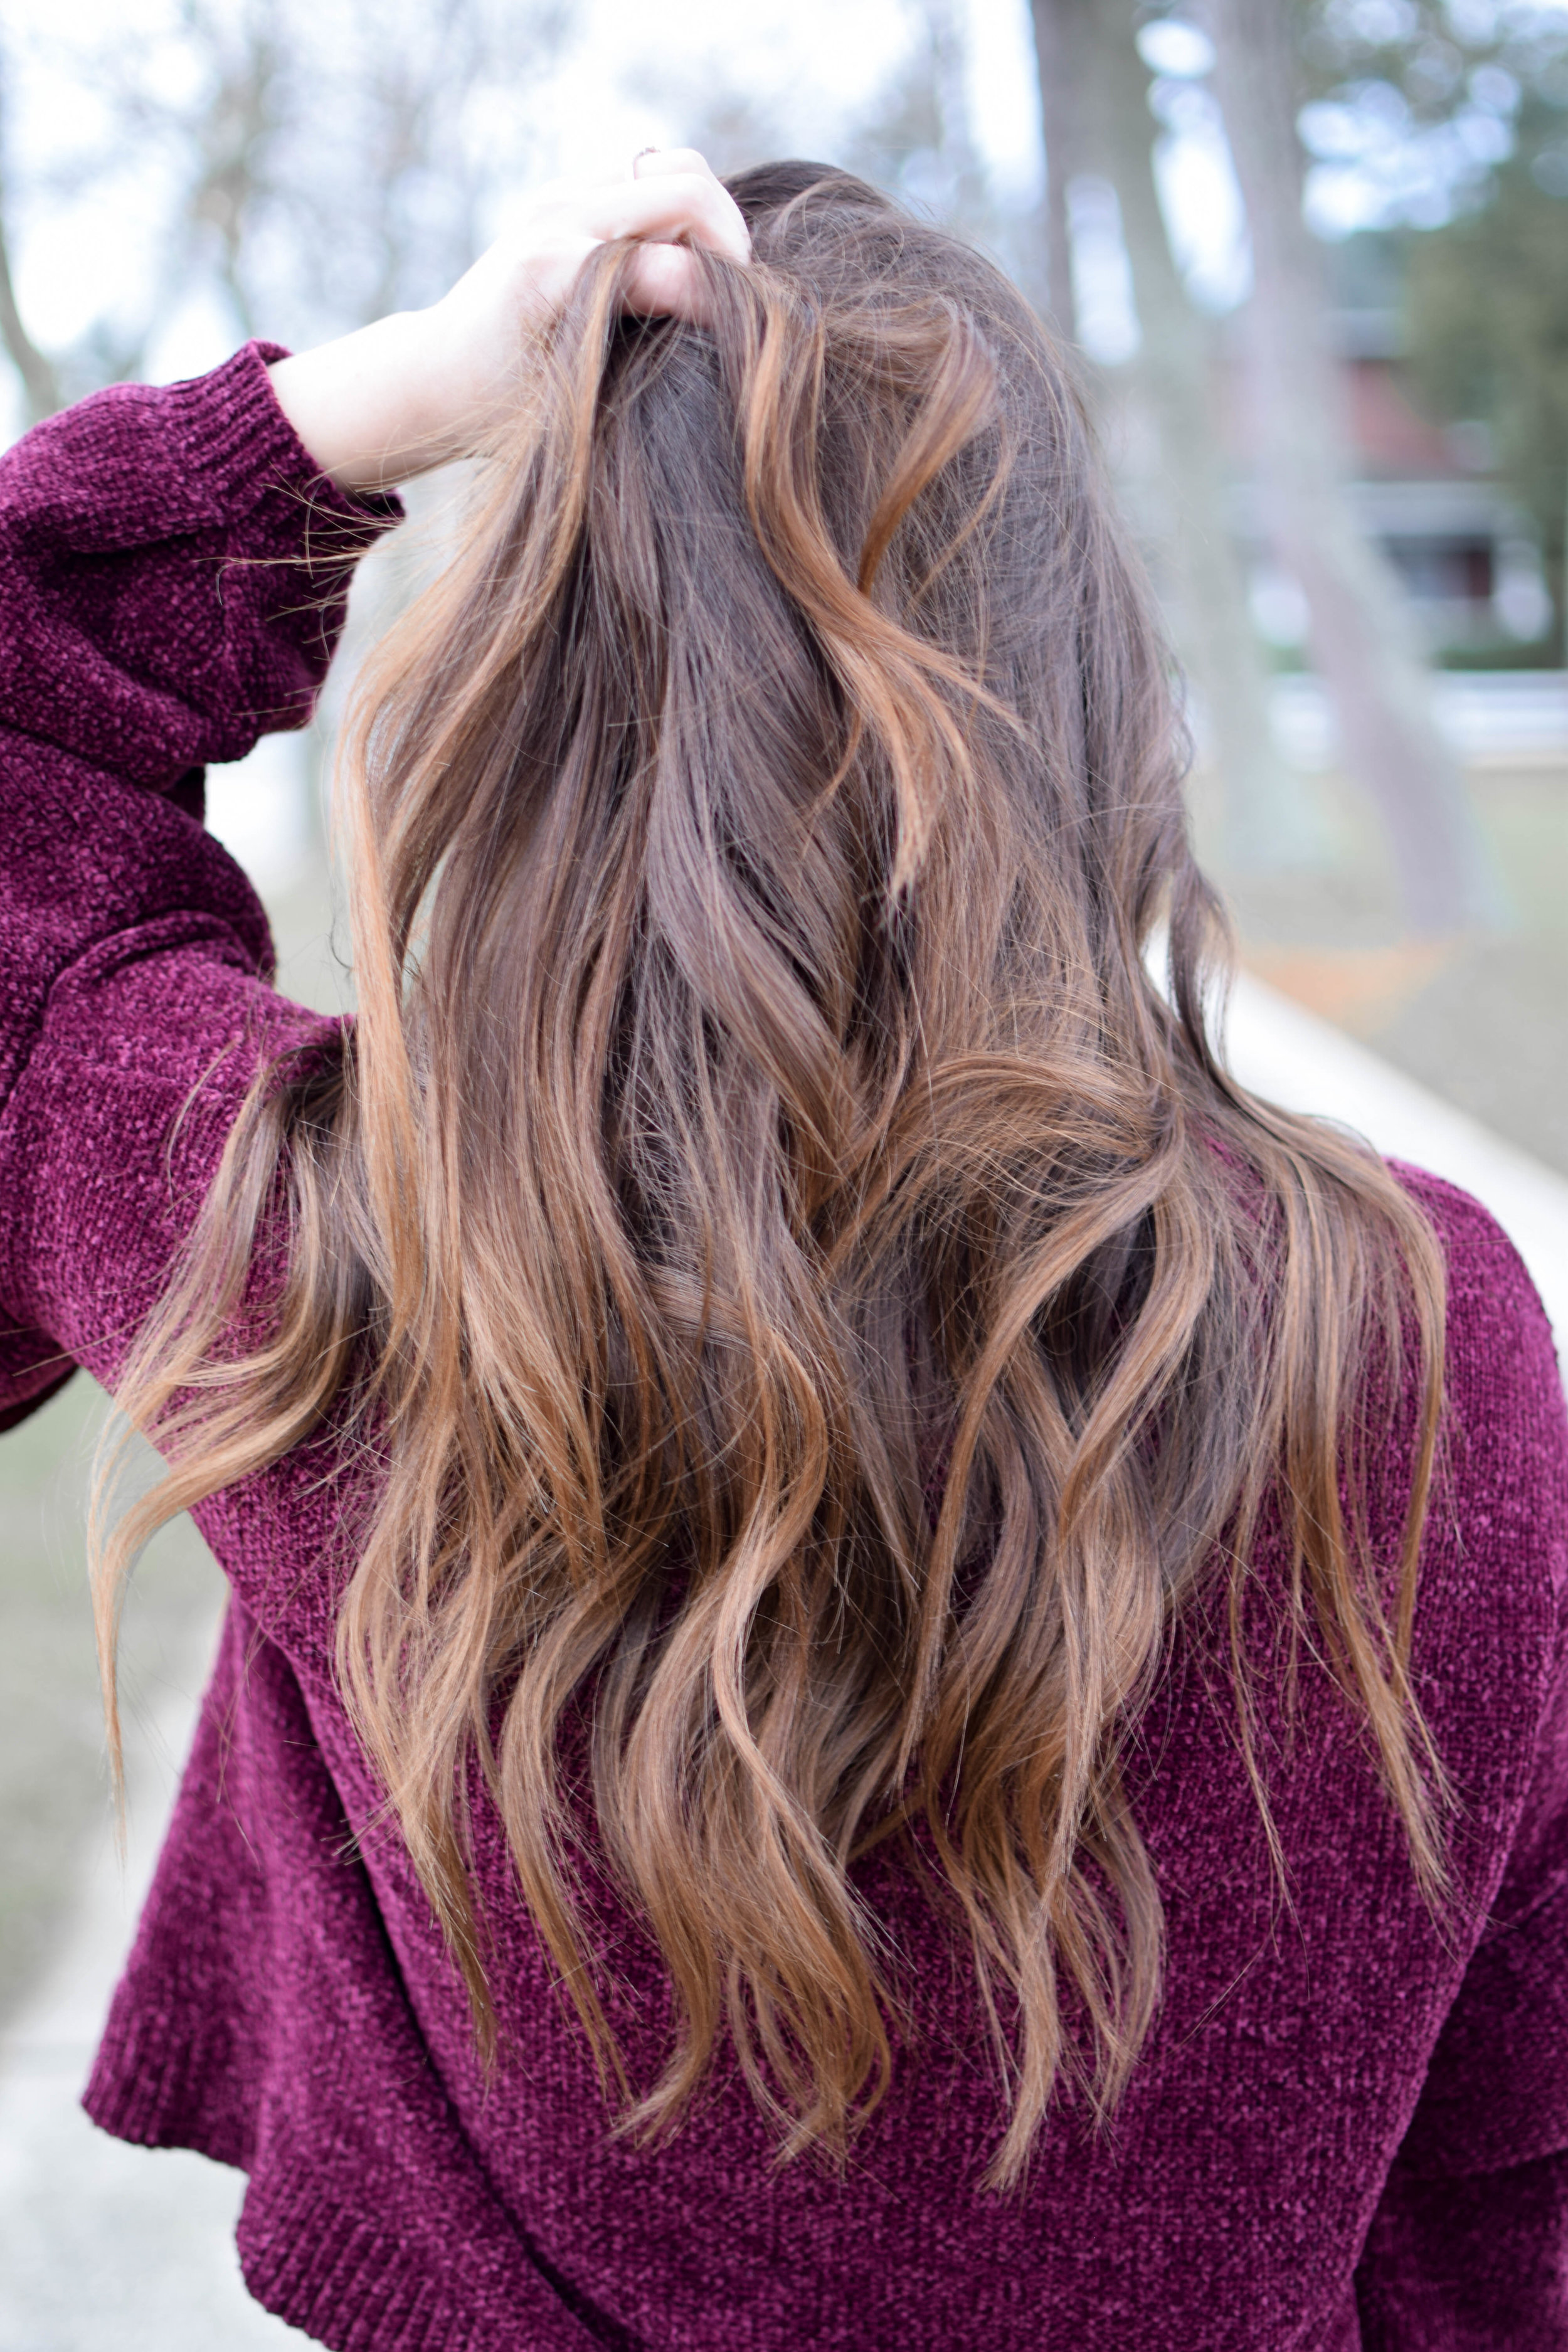 Holiday Outfit Idea: Chenille Ruffle Sleeve Sweater | Pine Barren Beauty | winter outfit idea, winter outfit inspiration, Christmas outfit idea, over the knee boots, black high waisted denim, hair goals, long wavy hair